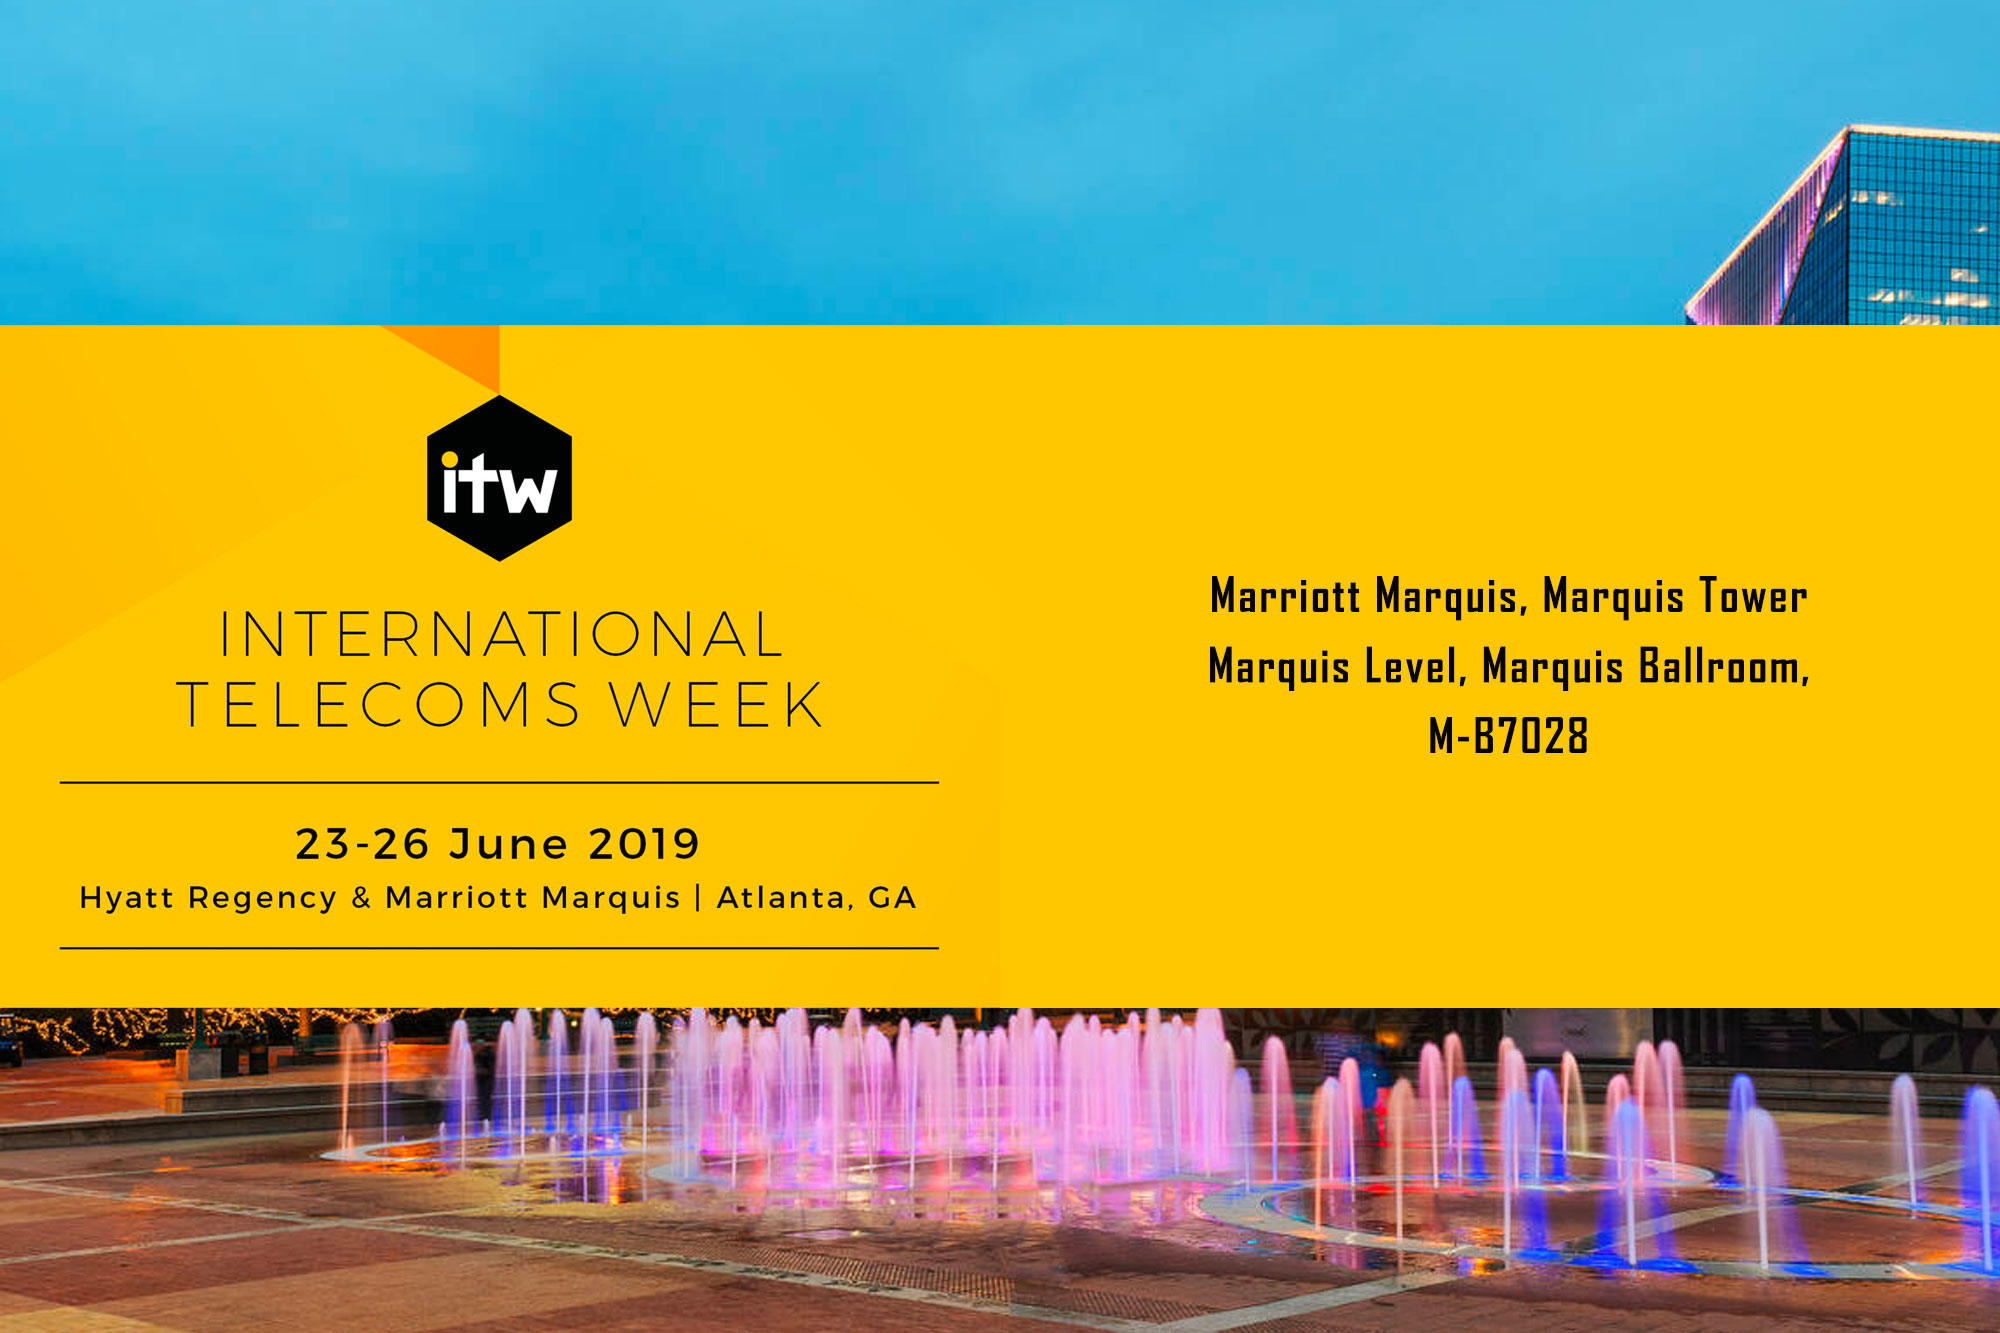 International Telecoms Week 2019